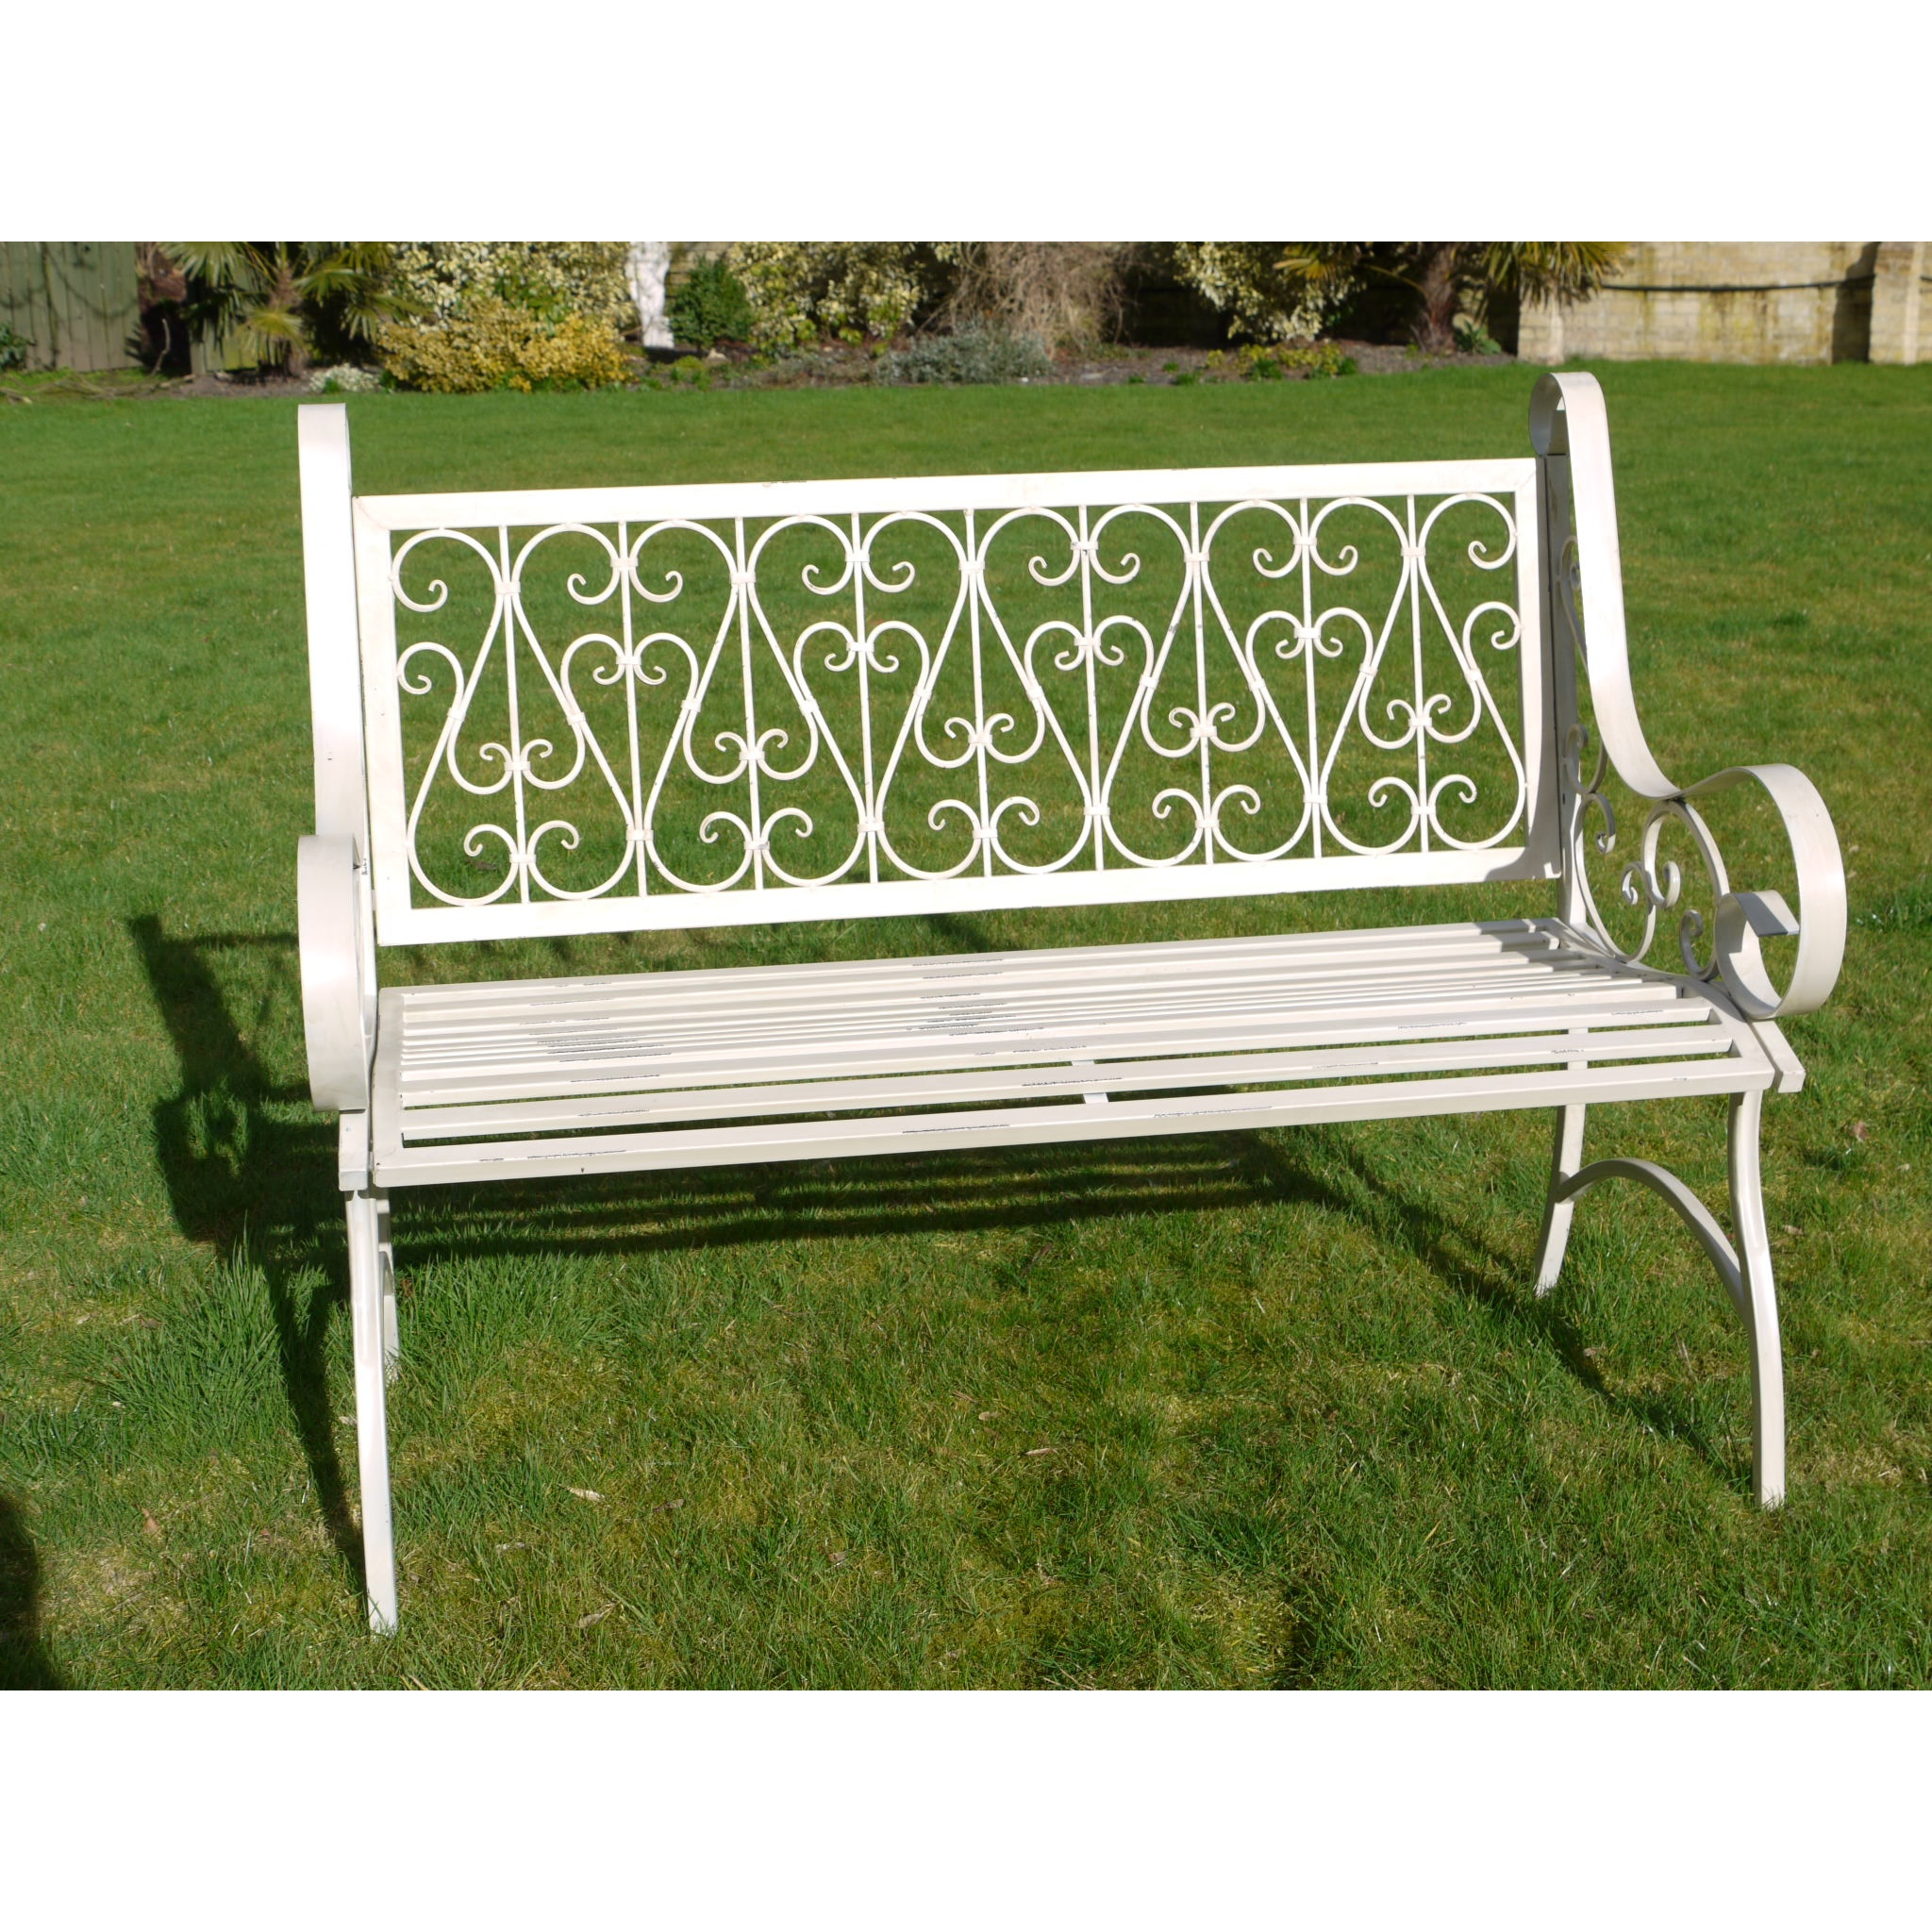 White ornate metal garden bench swanky interiors for Metal benches for outdoors